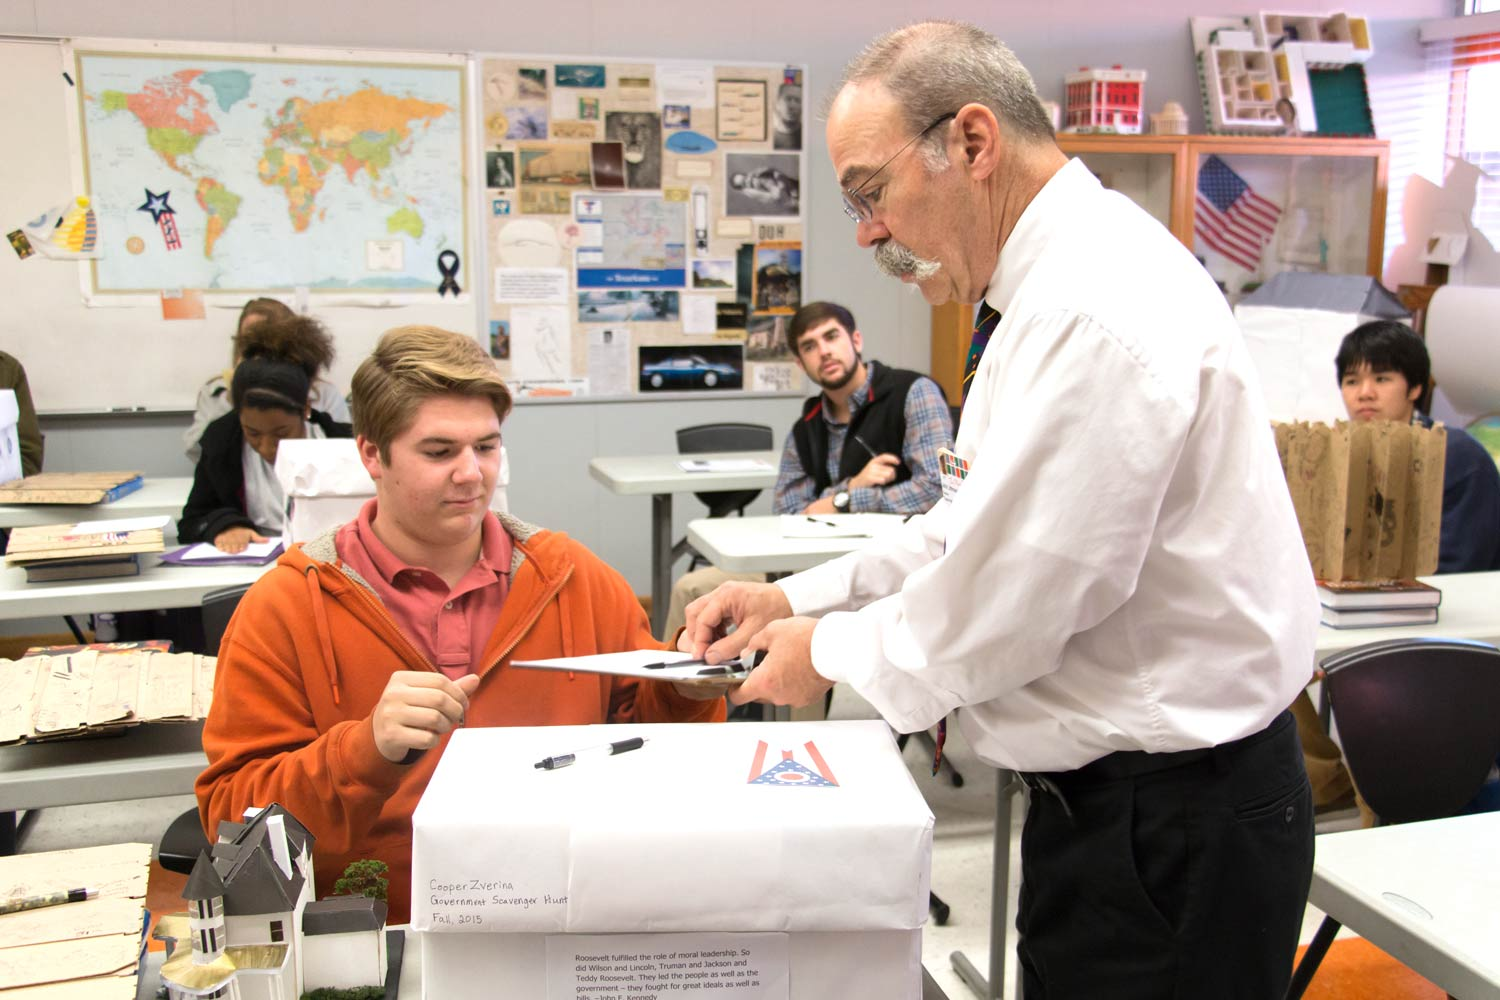 2016 graduate Cooper Zverina prepares to show government teacher John Littmann his project. Littmann assigned an annual government scavenger hunt project to his students during his teaching career.